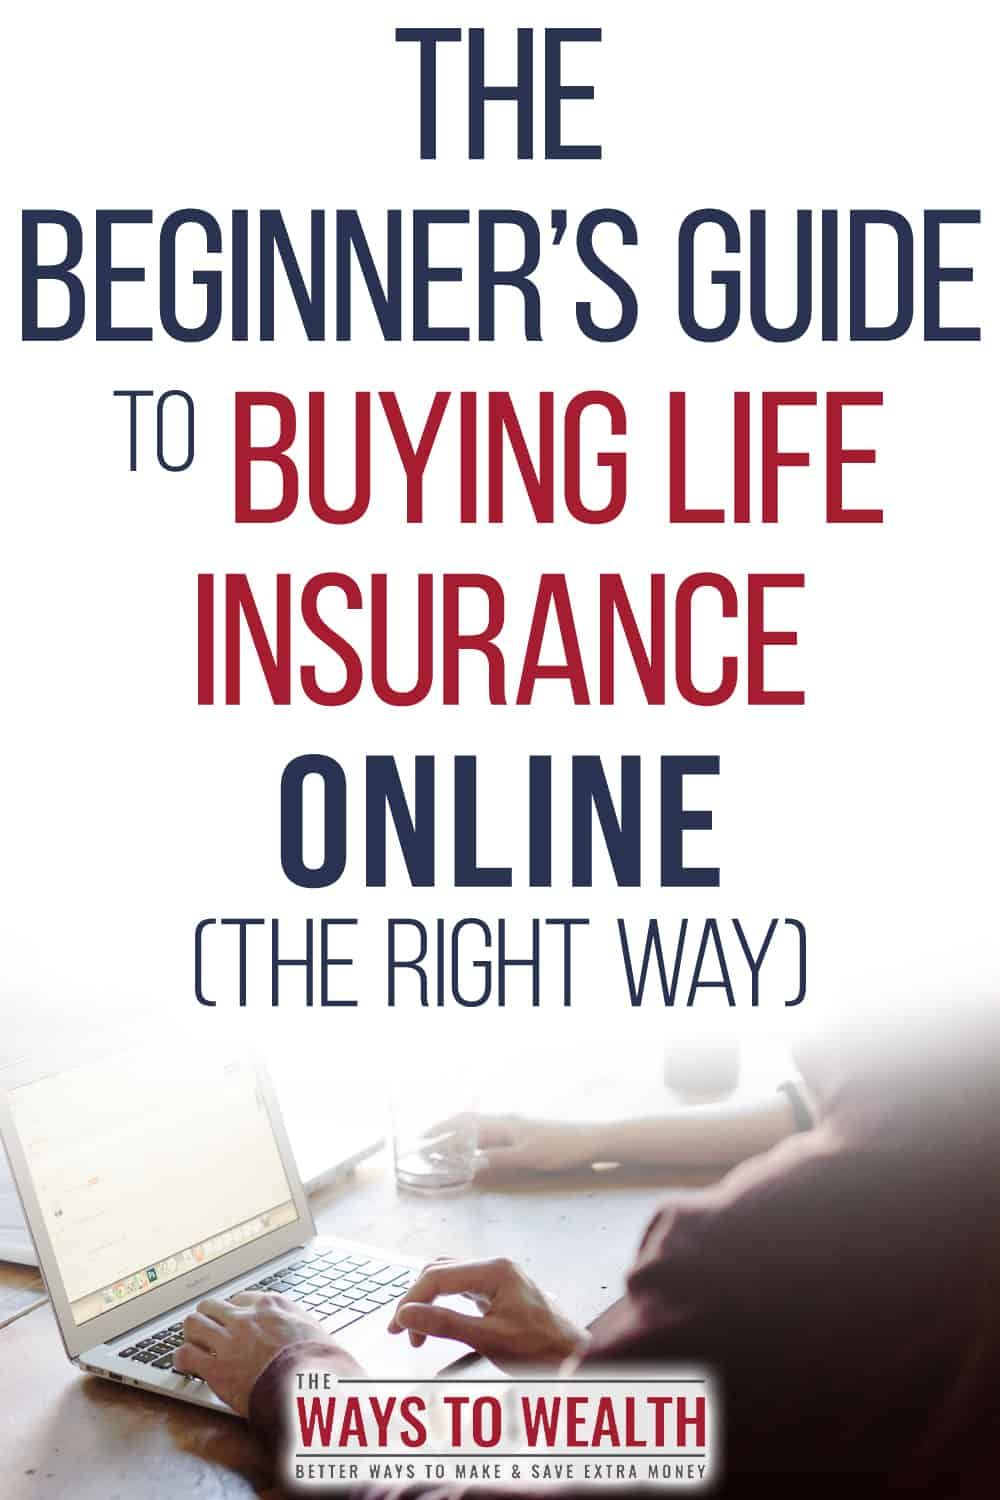 How To Buy Life Insurance Online Quickly With Images Buy